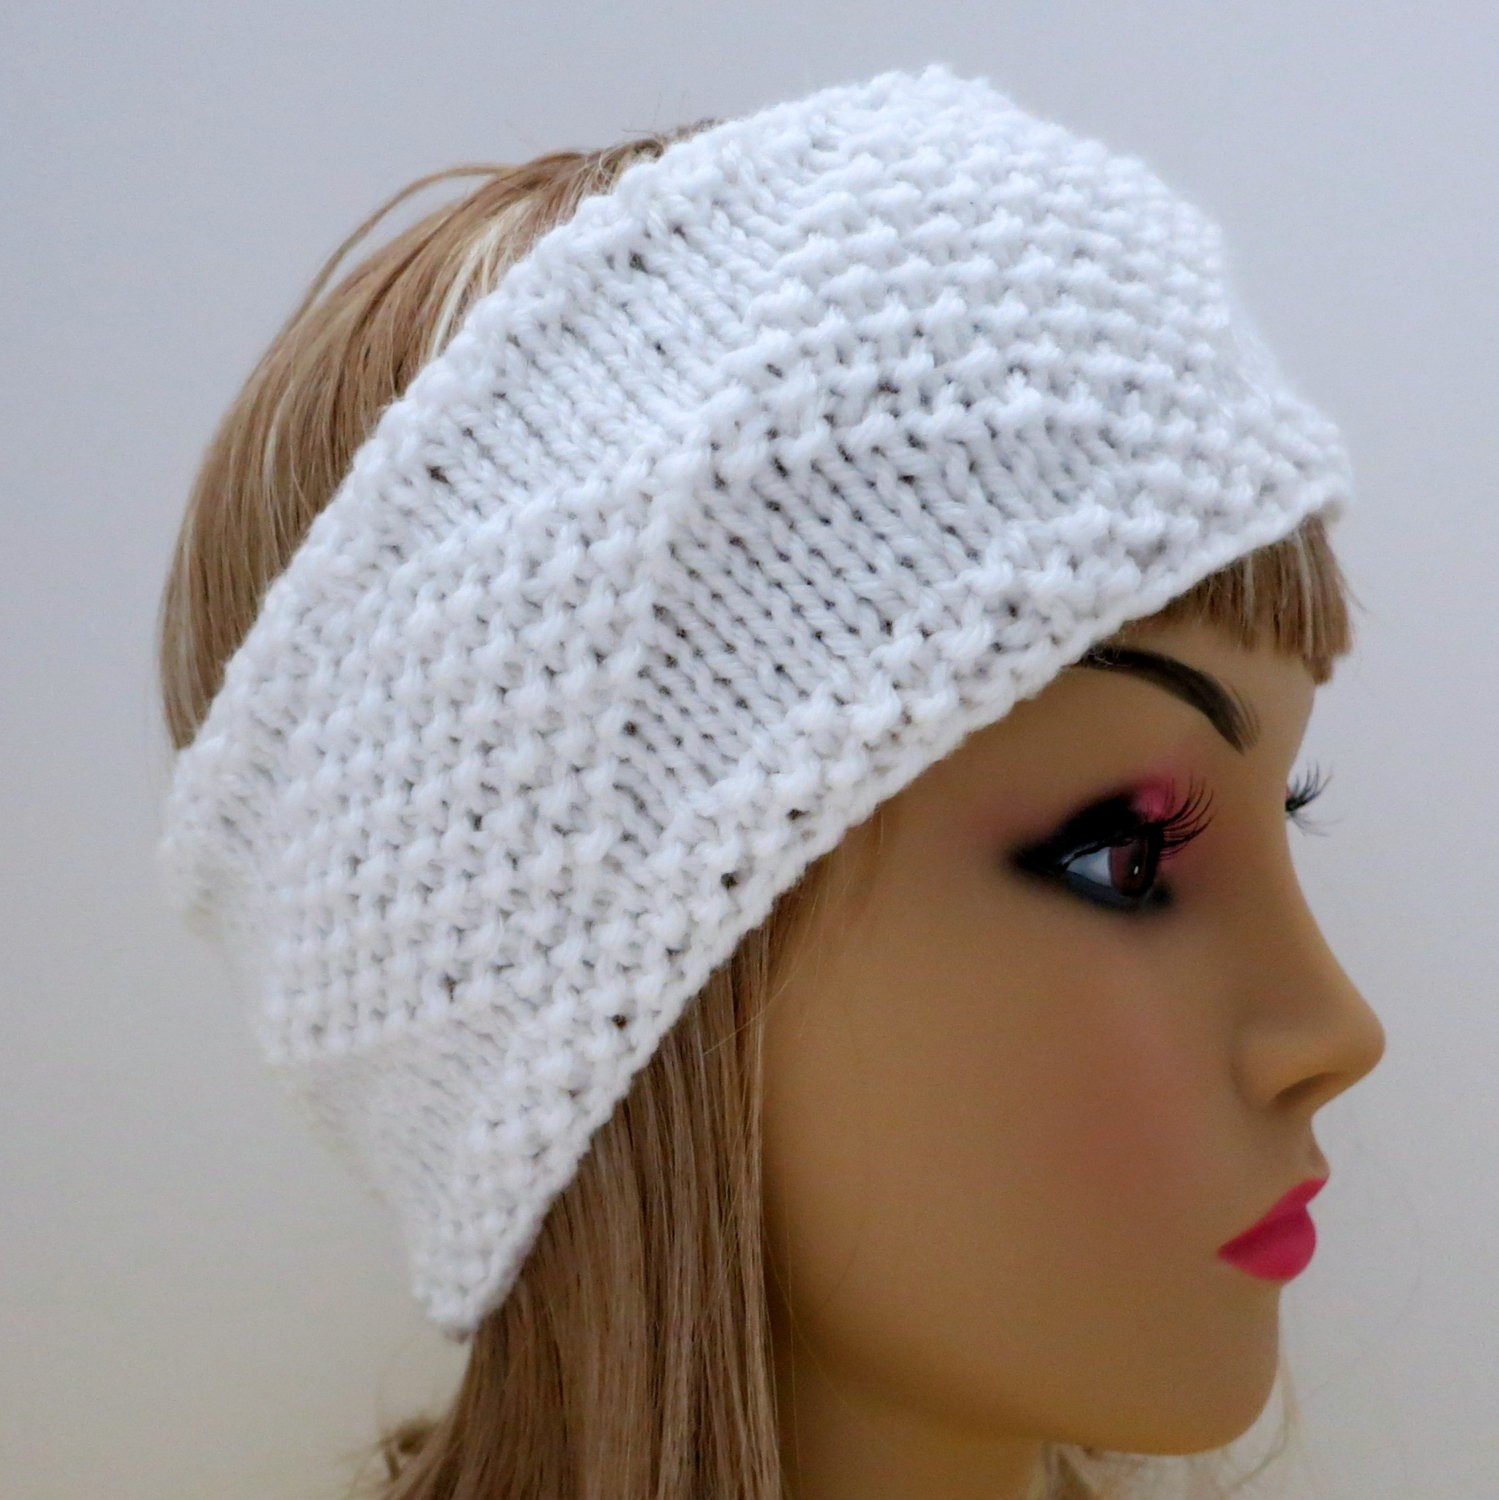 Knitting Pattern Headband Ear Warmer : Knit Ear Warmer Pattern A Knitting Blog